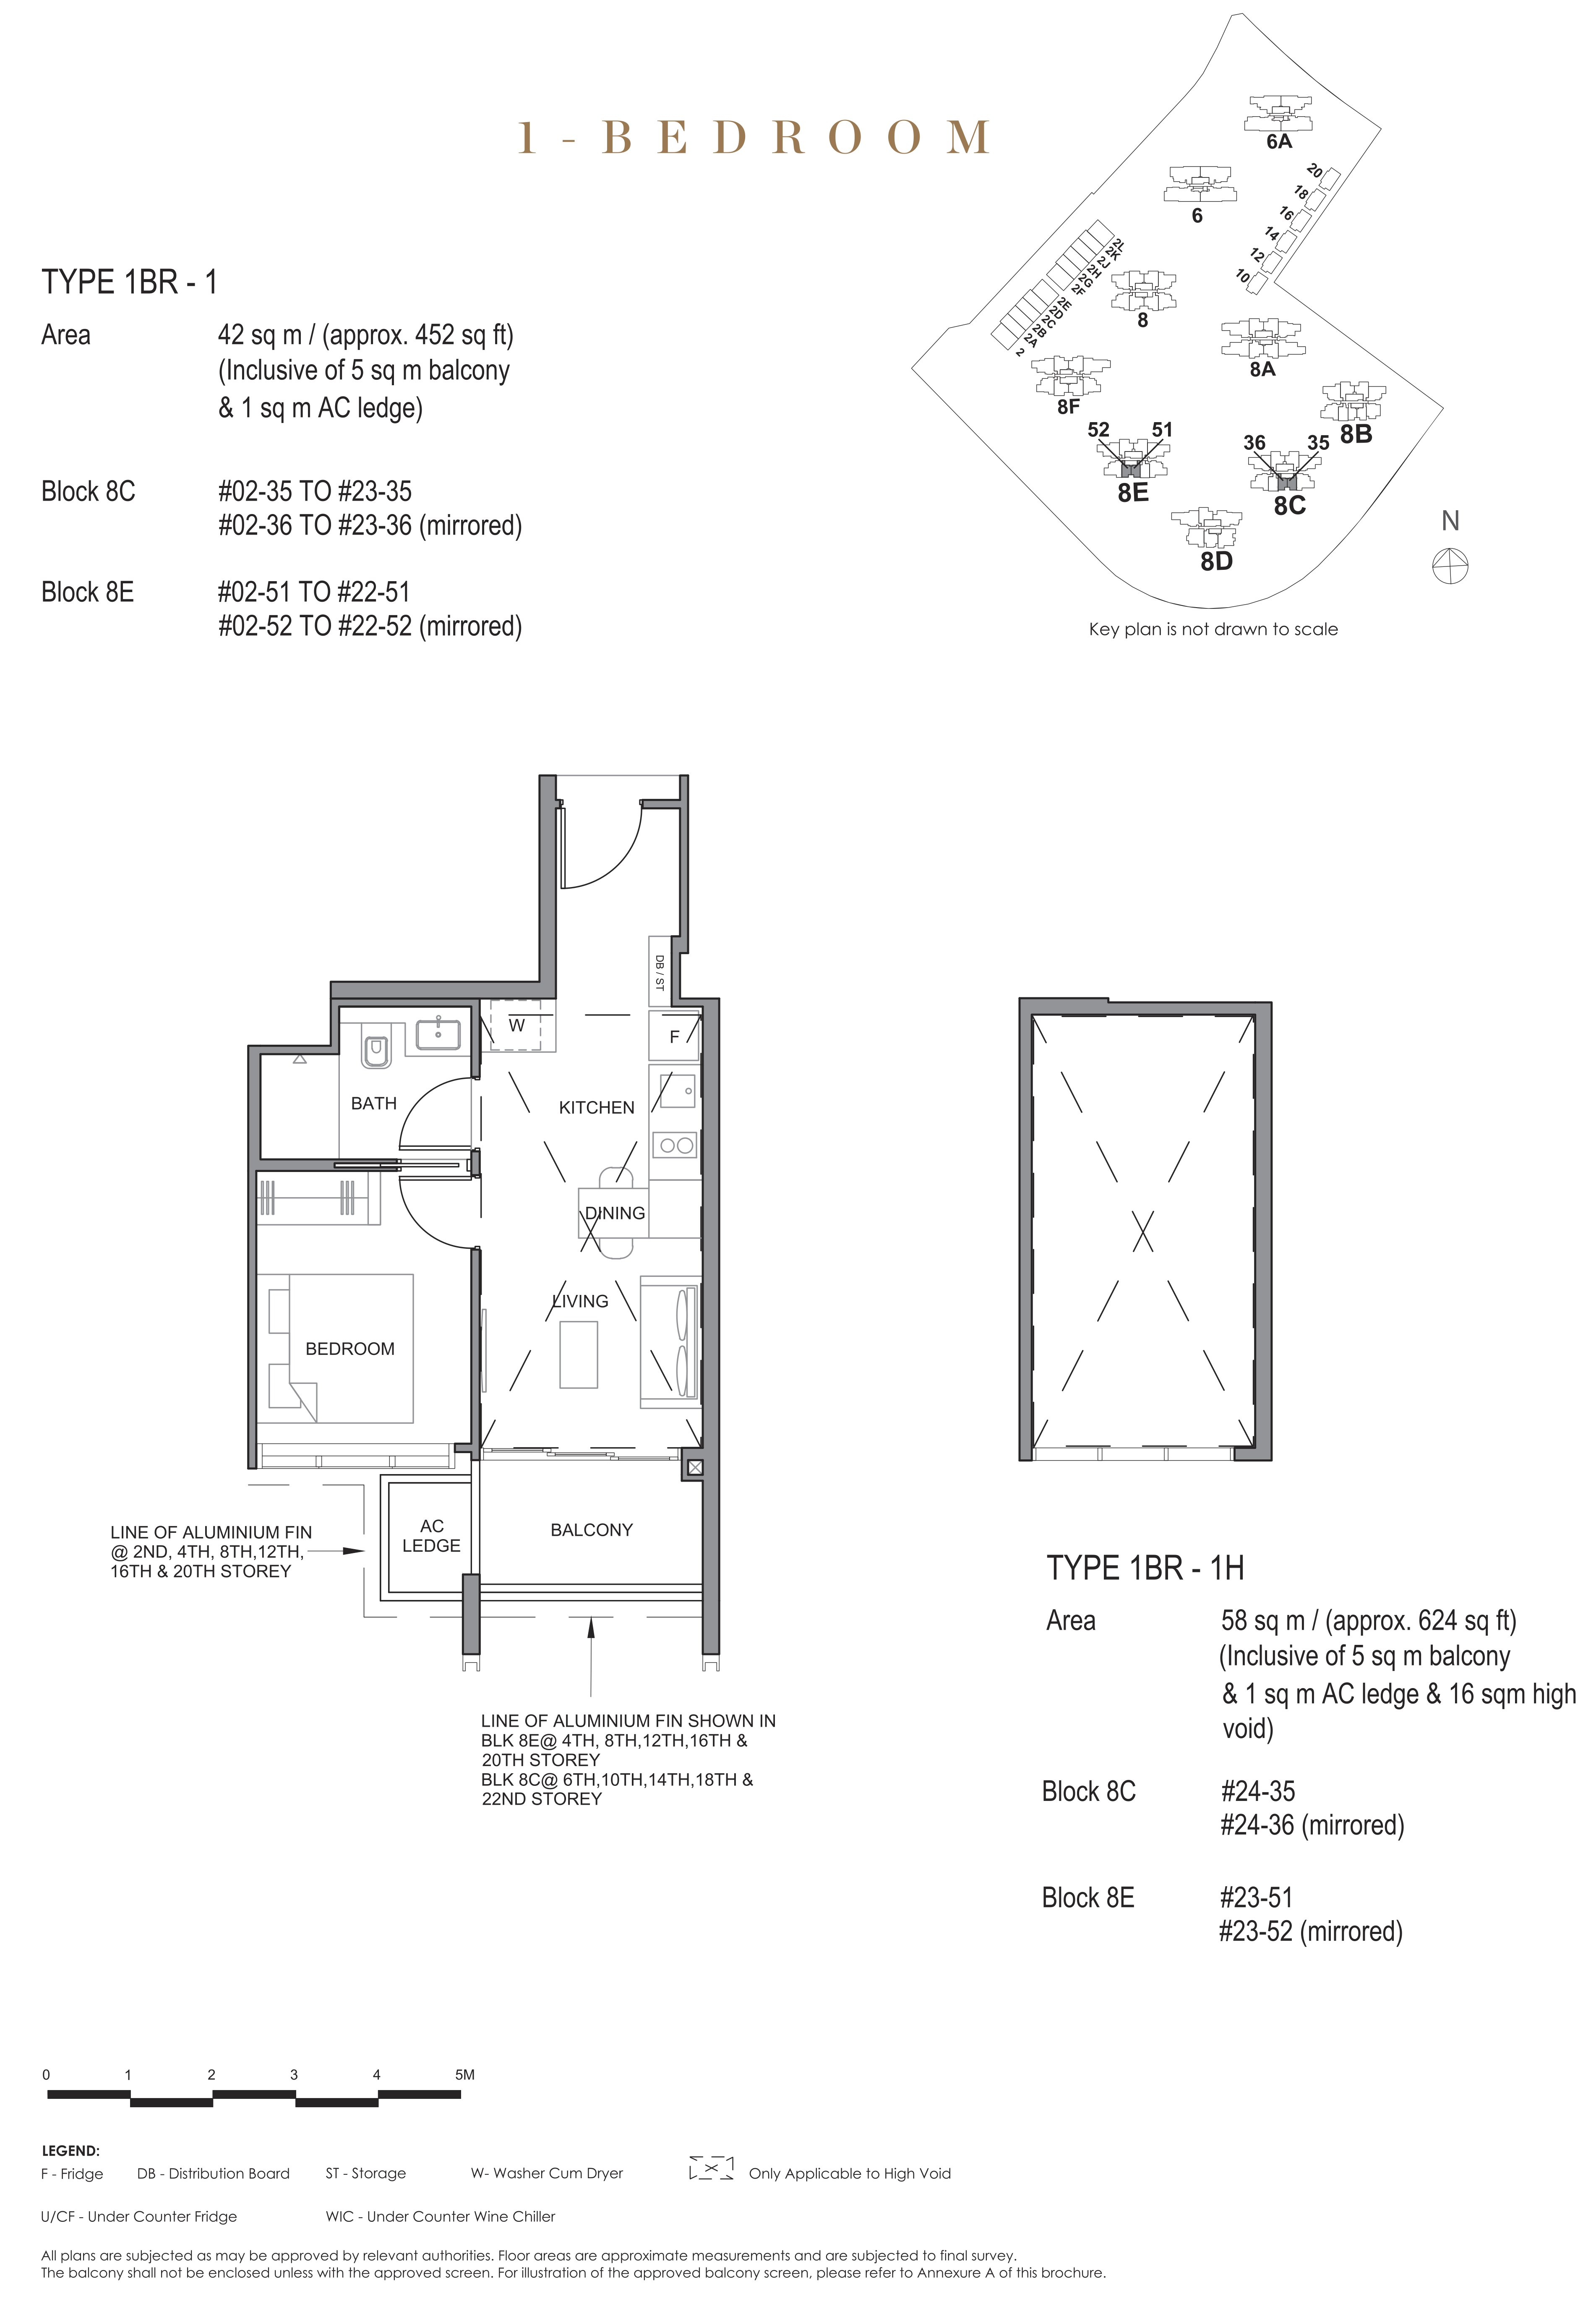 Parc Clematis 锦泰门第 contemporary 1 bedroom 1卧房 1 BR-1